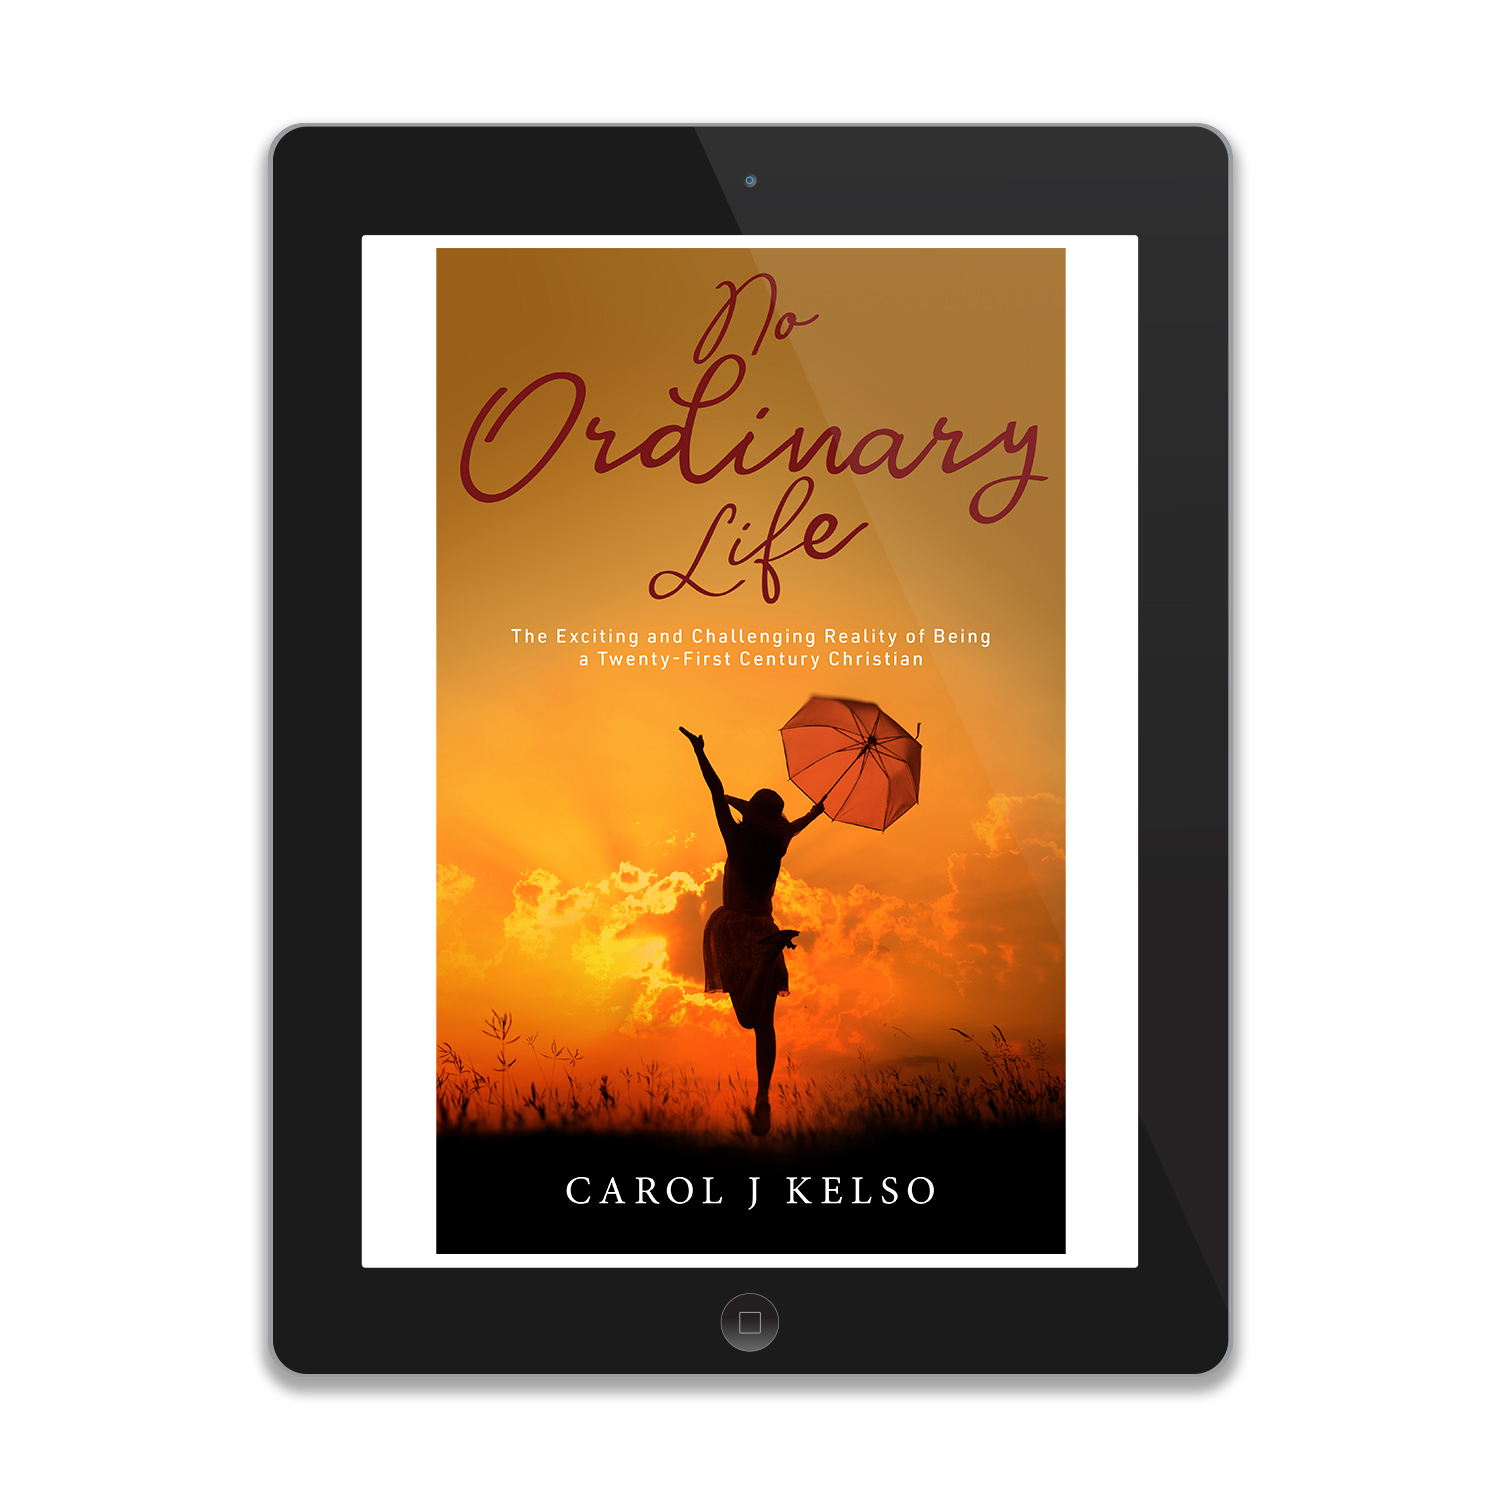 'No Ordinary Life' is a great book about living a 21st Century faith-based life, by author Carol J Kelso. The book cover and interior were designed by Mark Thomas, of coverness.com. To find out more about my book design services, please visit www.coverness.com.